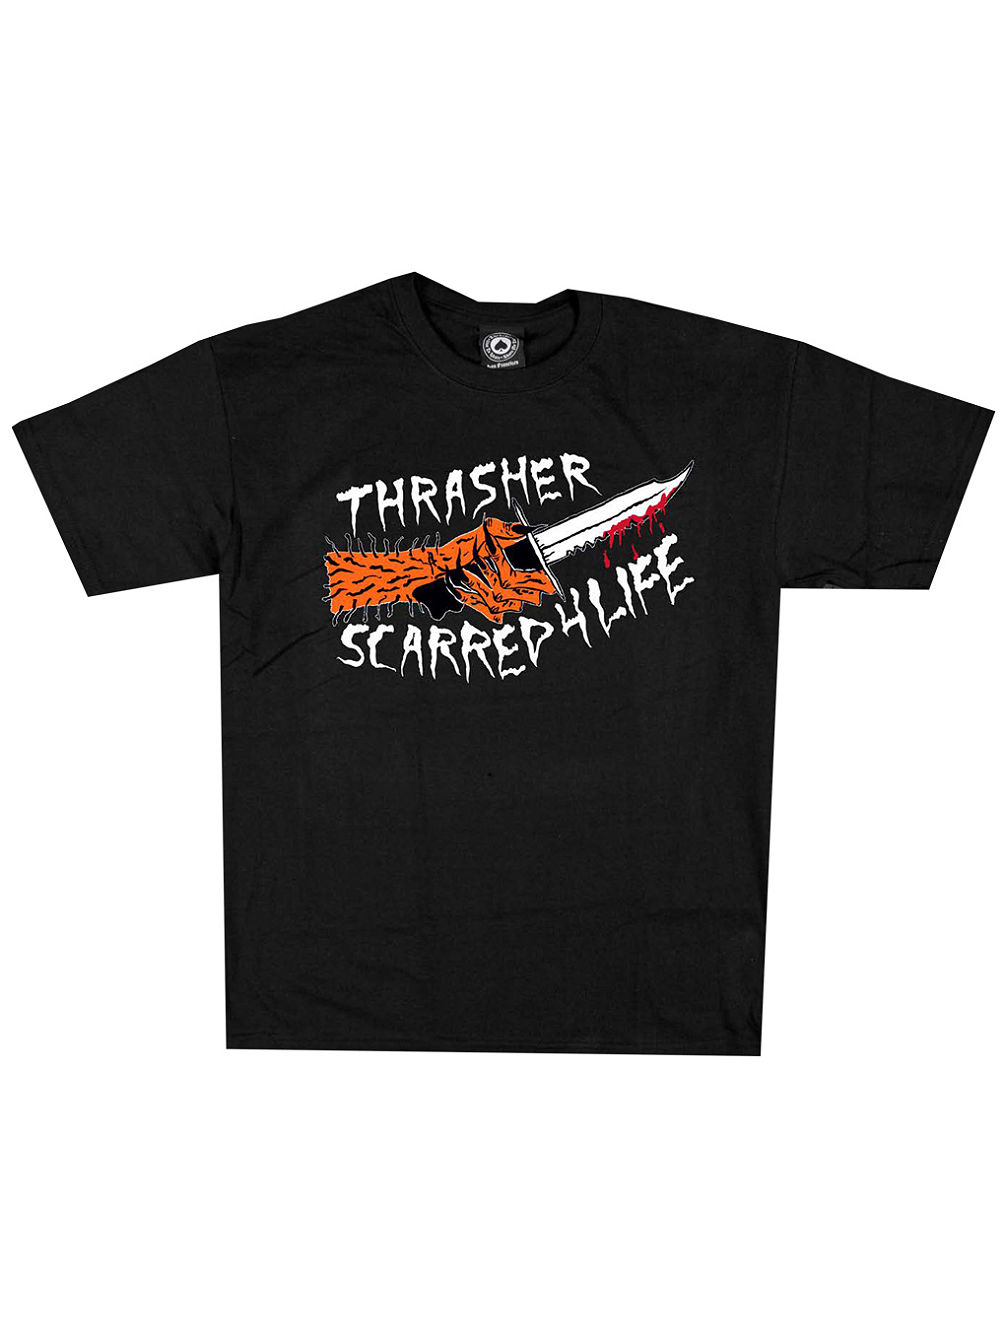 Scarred T-Shirt